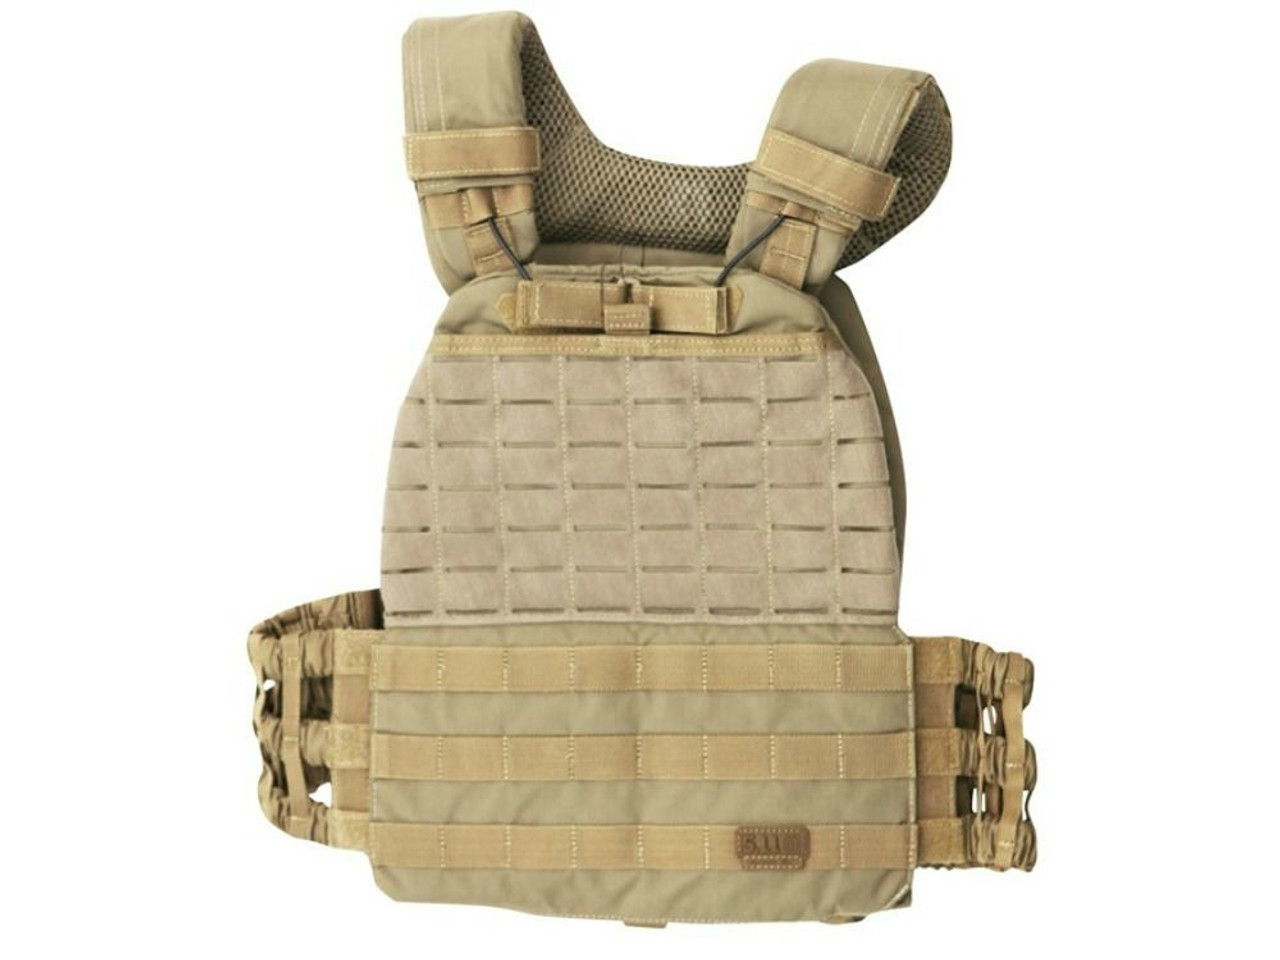 5.11 TACTICAL TACTEC™ PLATE CARRIER 56100 / SANDSTONE (328)